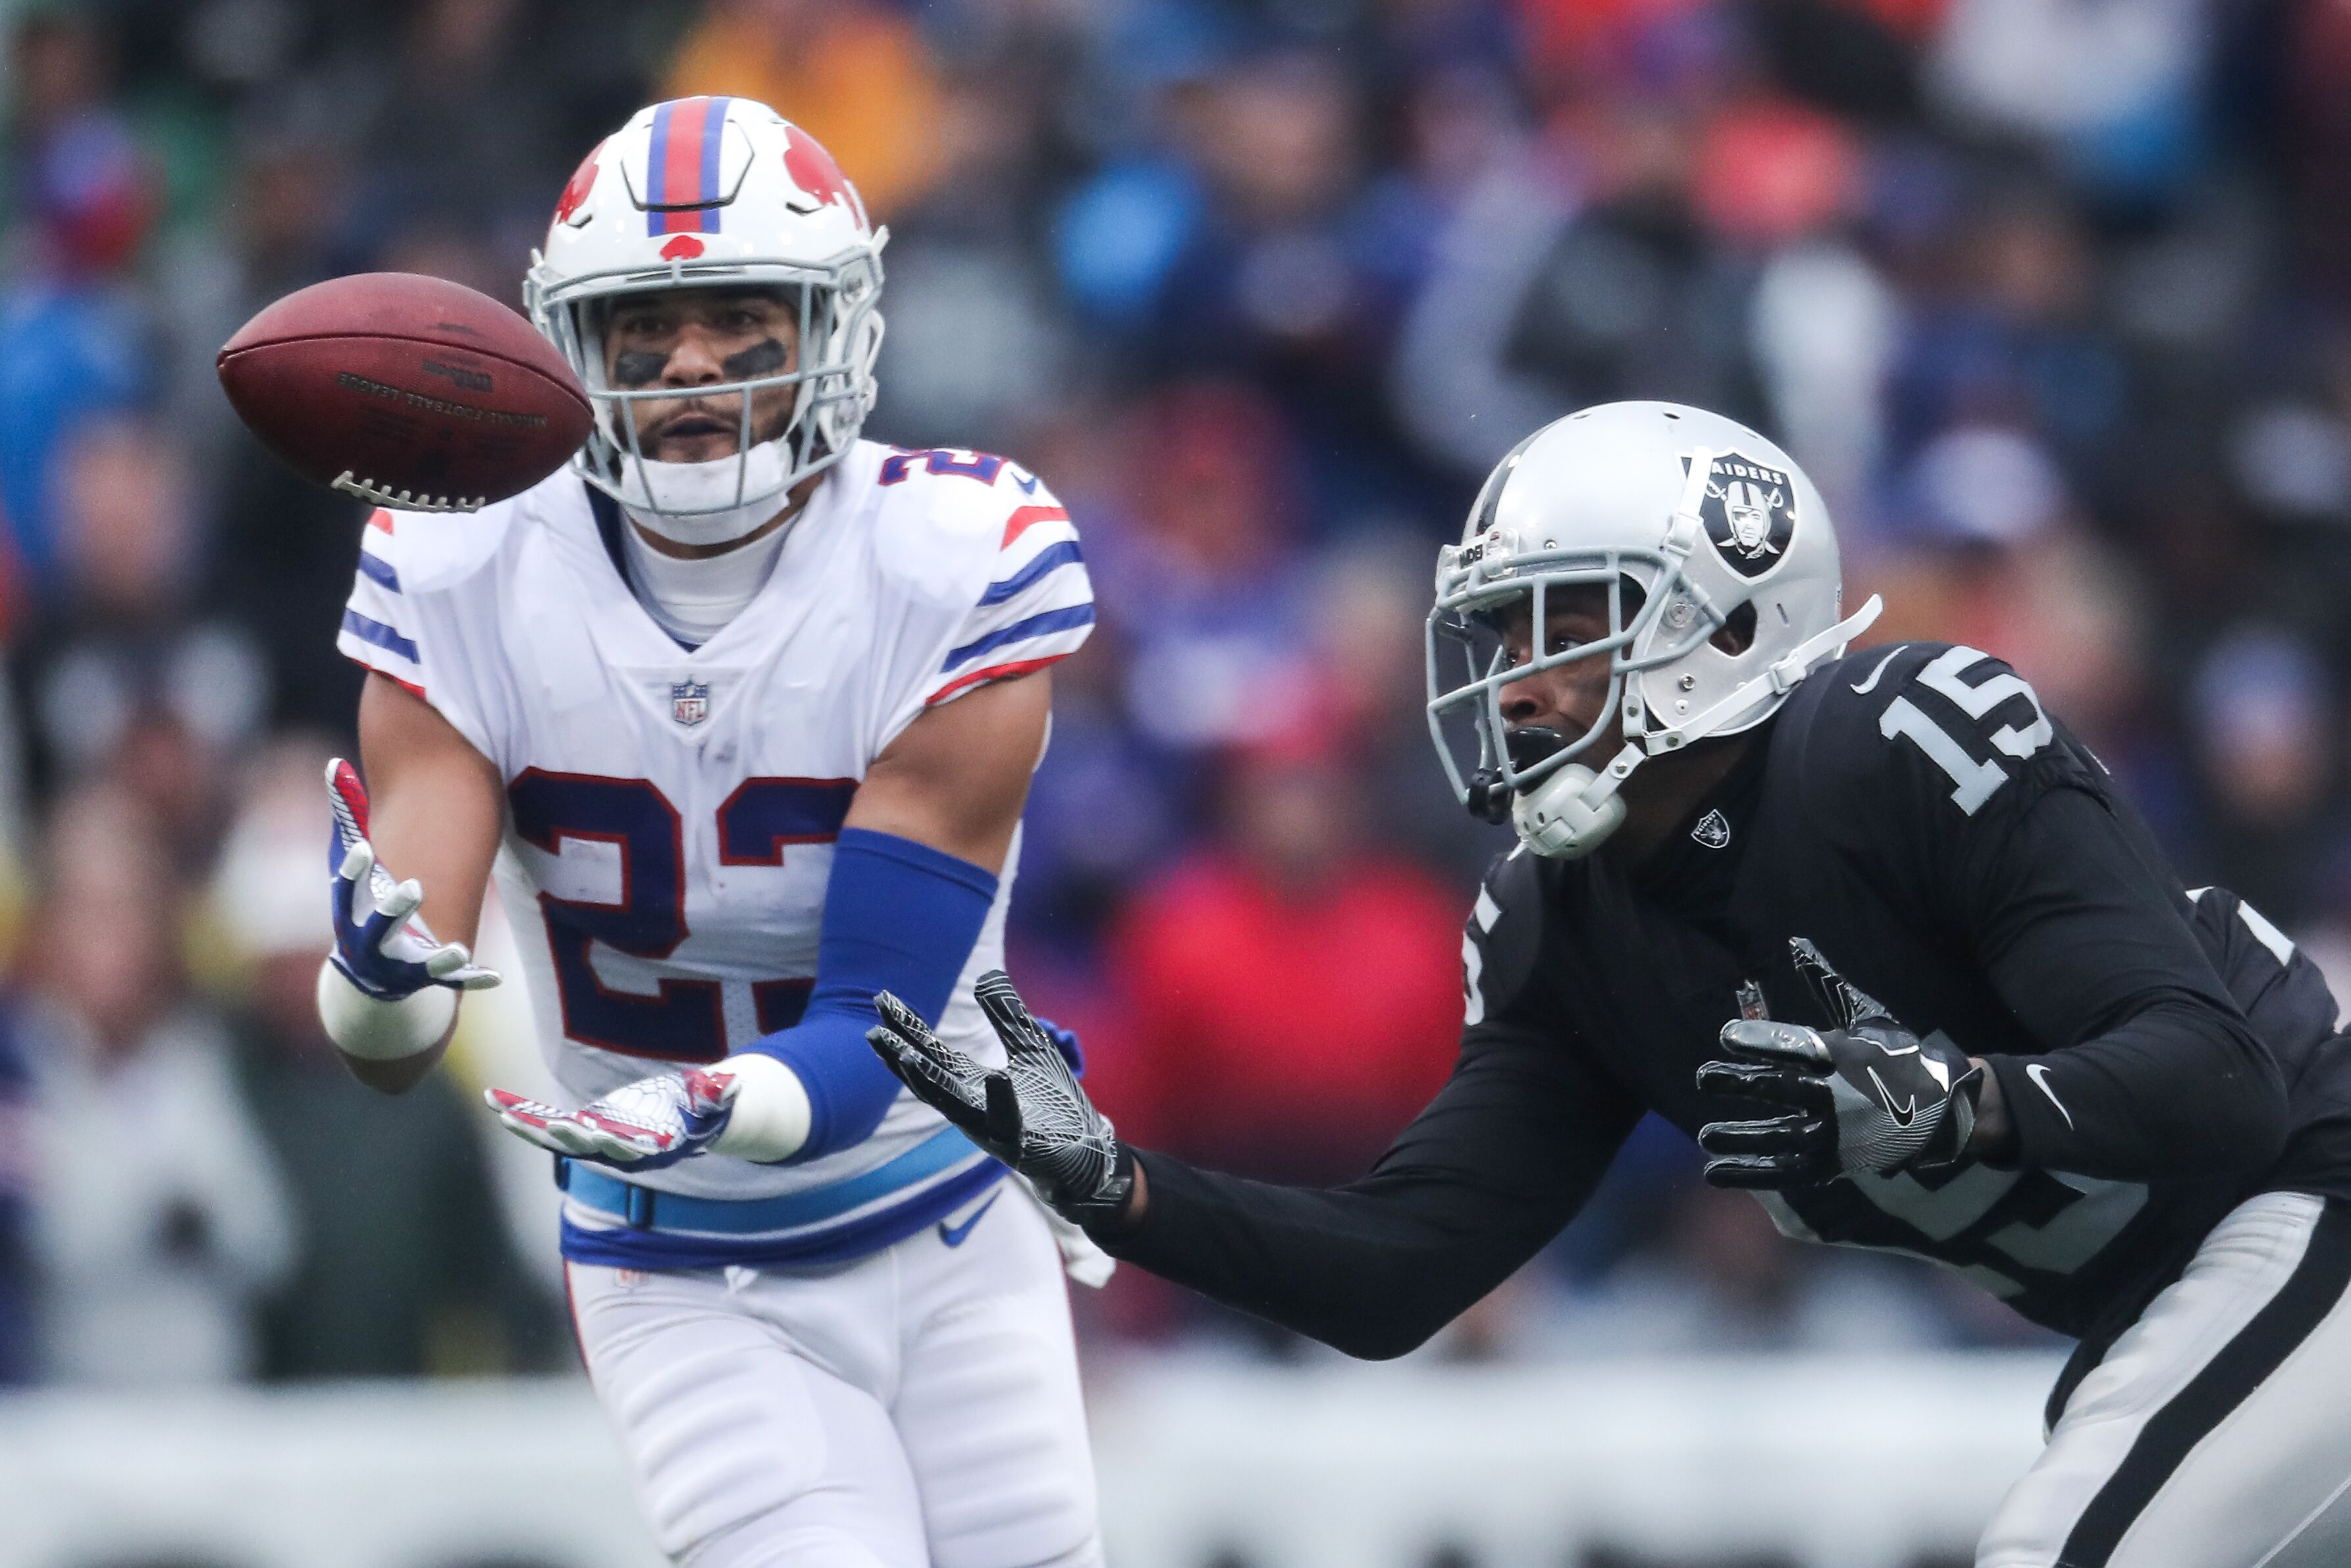 867920006-oakland-raiders-v-buffalo-bills.jpg